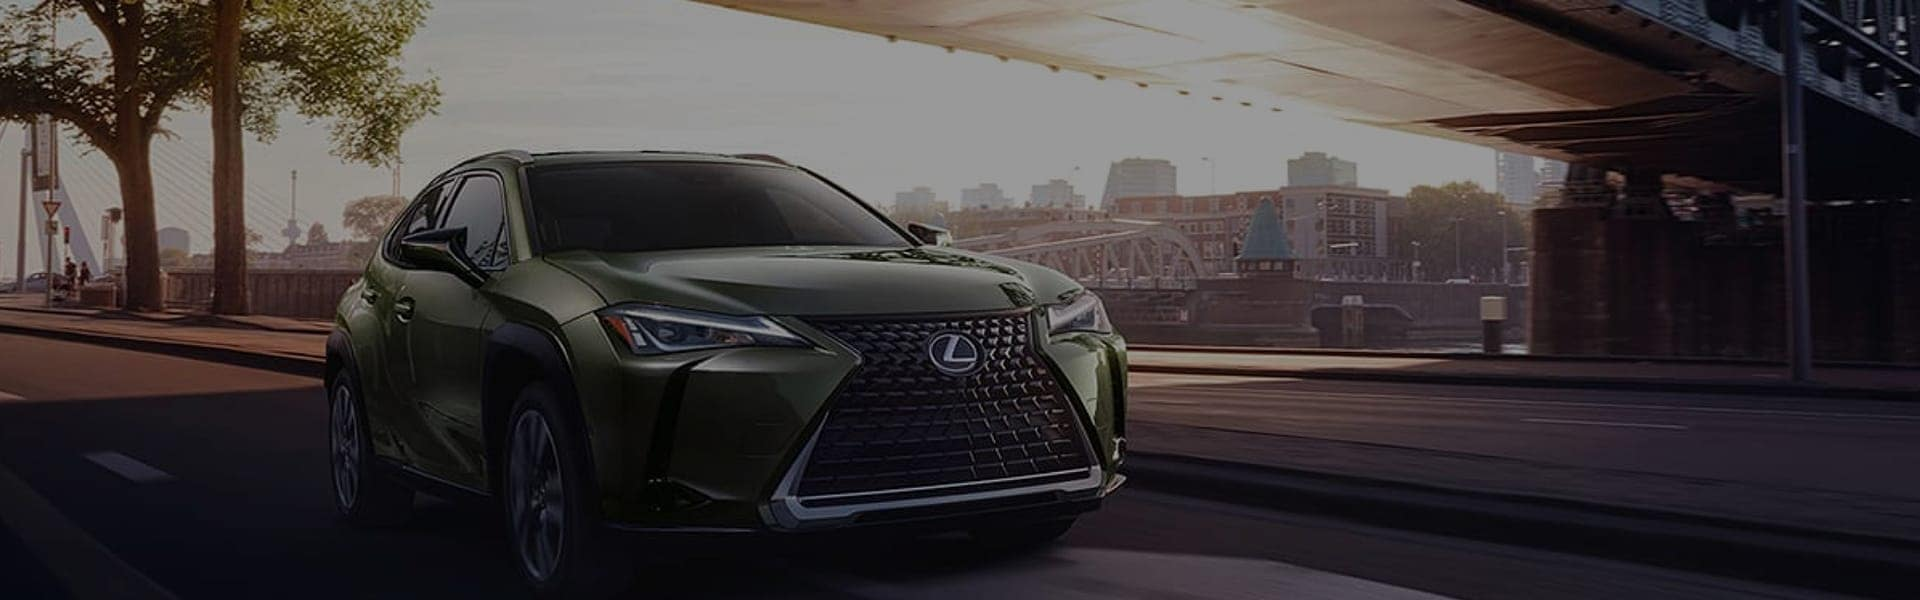 Thompson Lexus Willow Grove >> Thompson Lexus Willow Grove Lexus Dealer In Willow Grove Pa